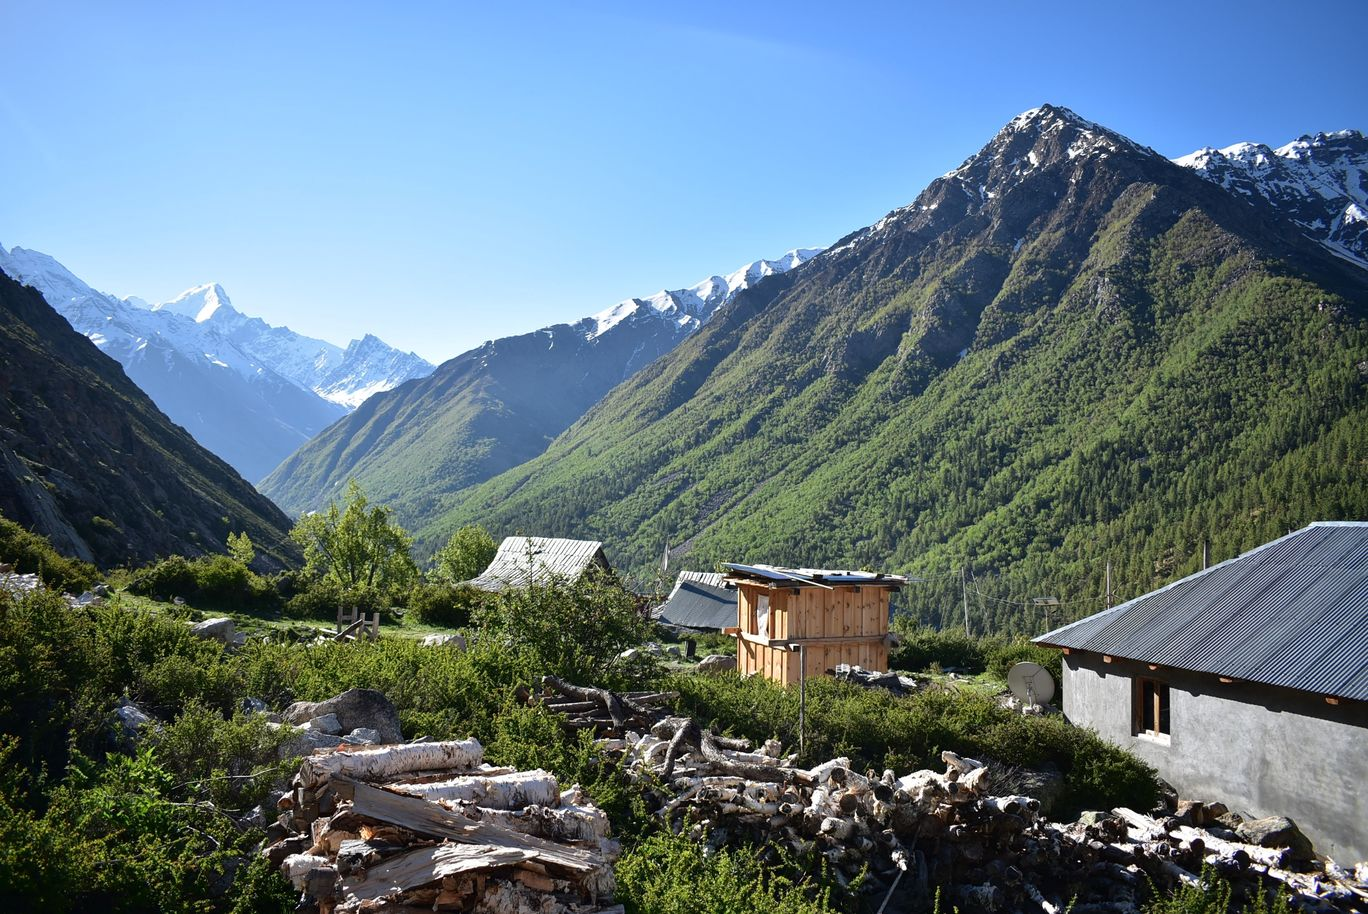 Photo of Chitkul By tulika dey